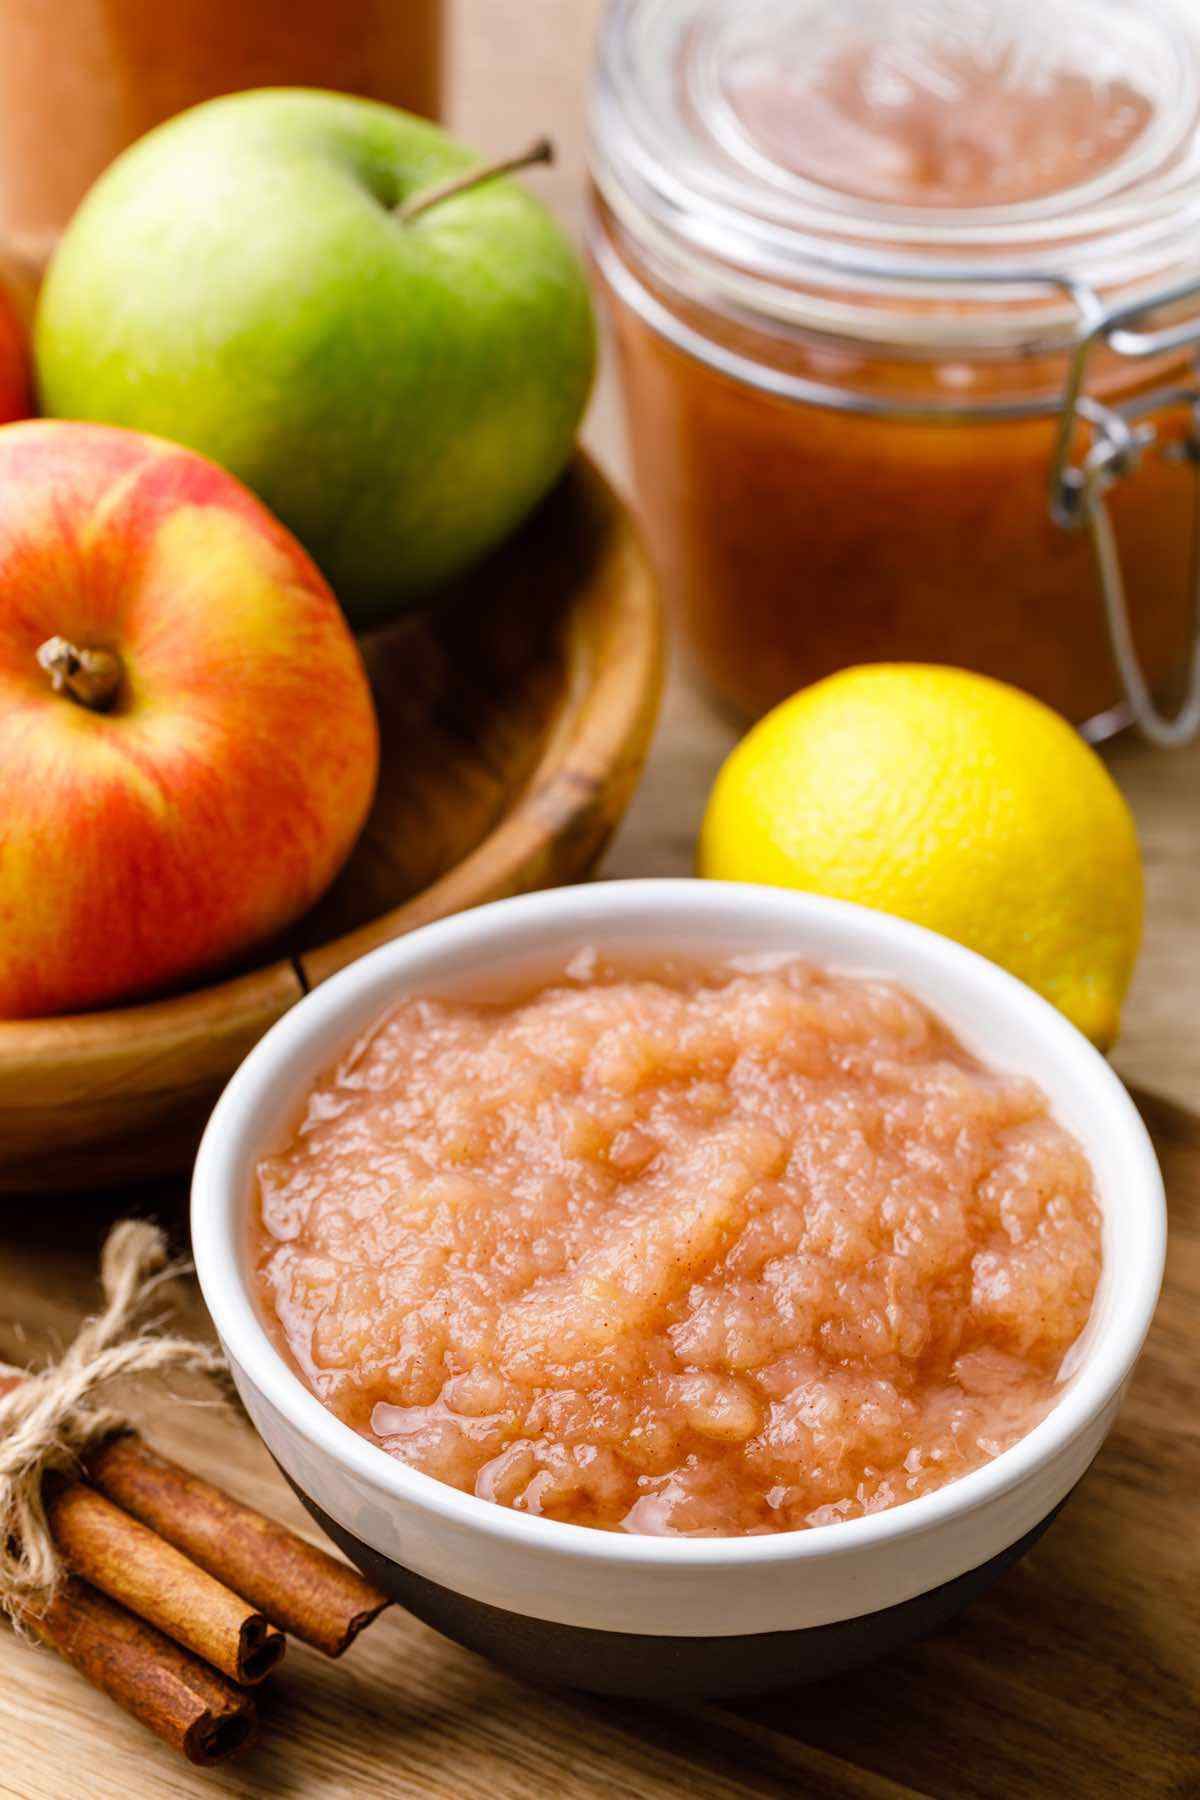 Homemade Instant Pot Cinnamon Applesauce